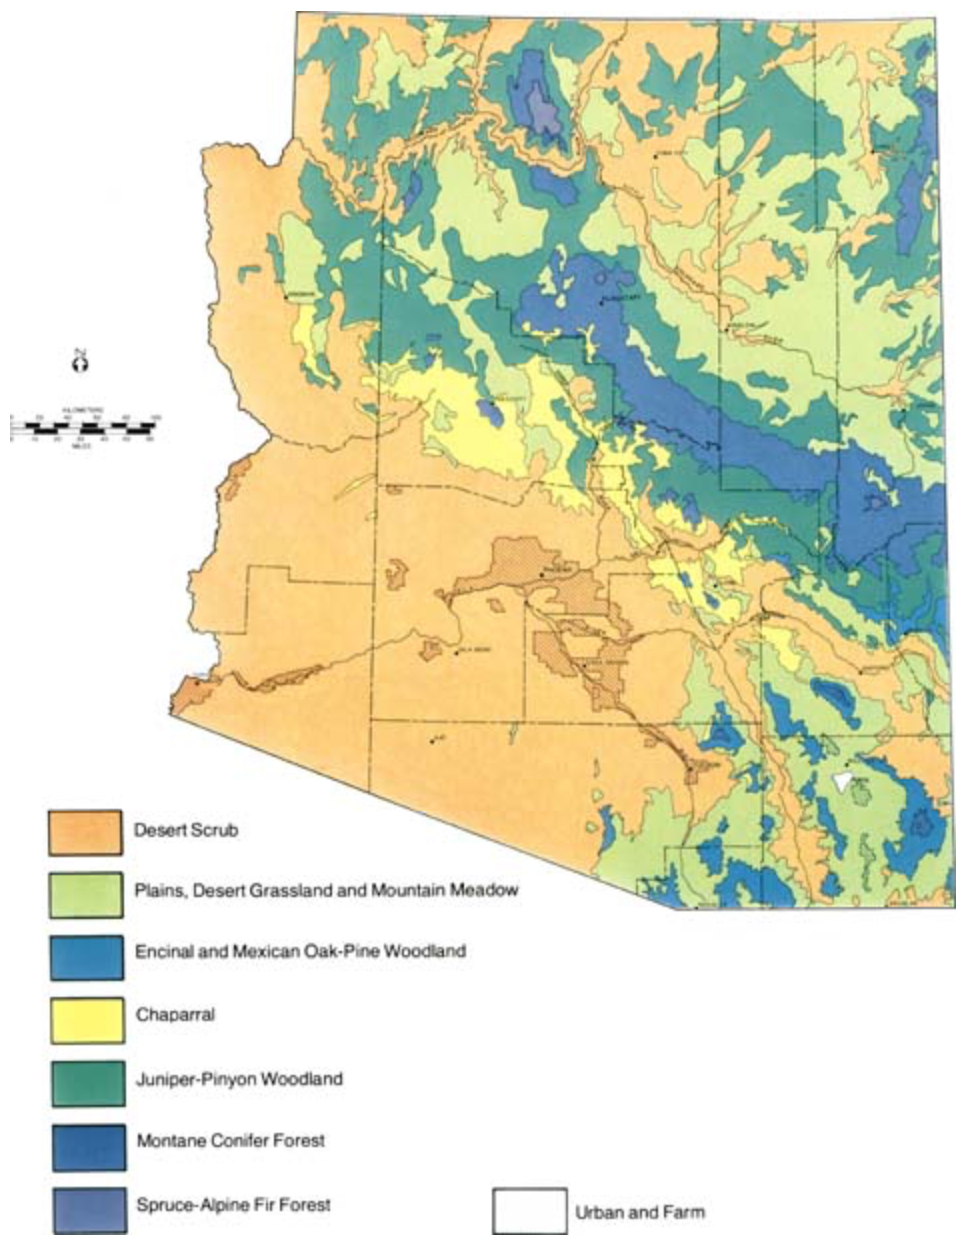 Map Of Arizona Fires 2015.Sky Island Fire Ecology U S National Park Service